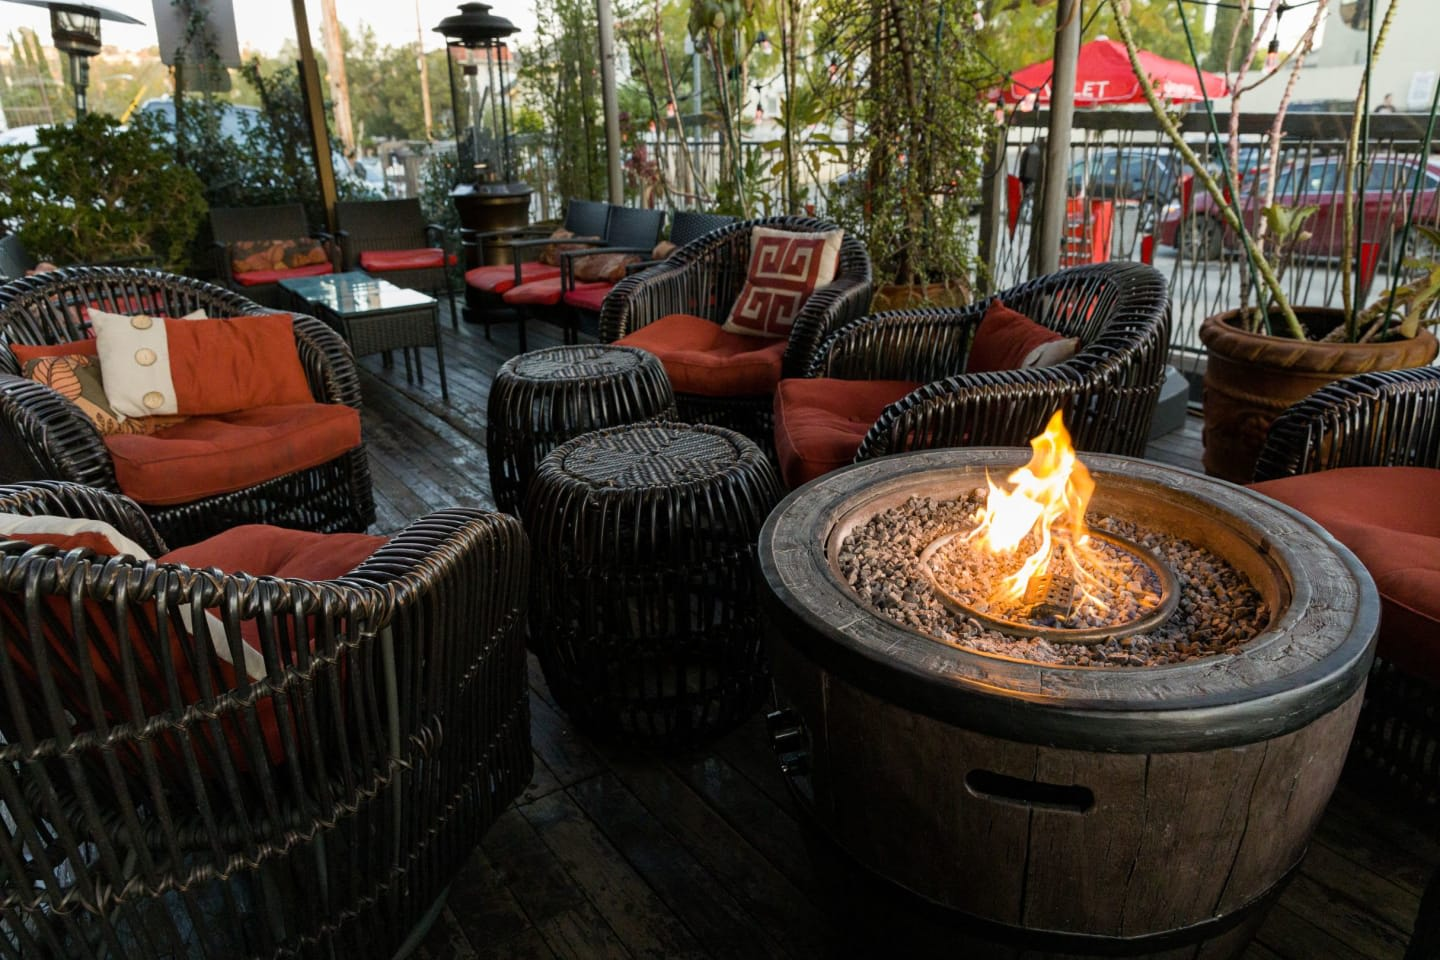 Patio with chairs and a fire pit